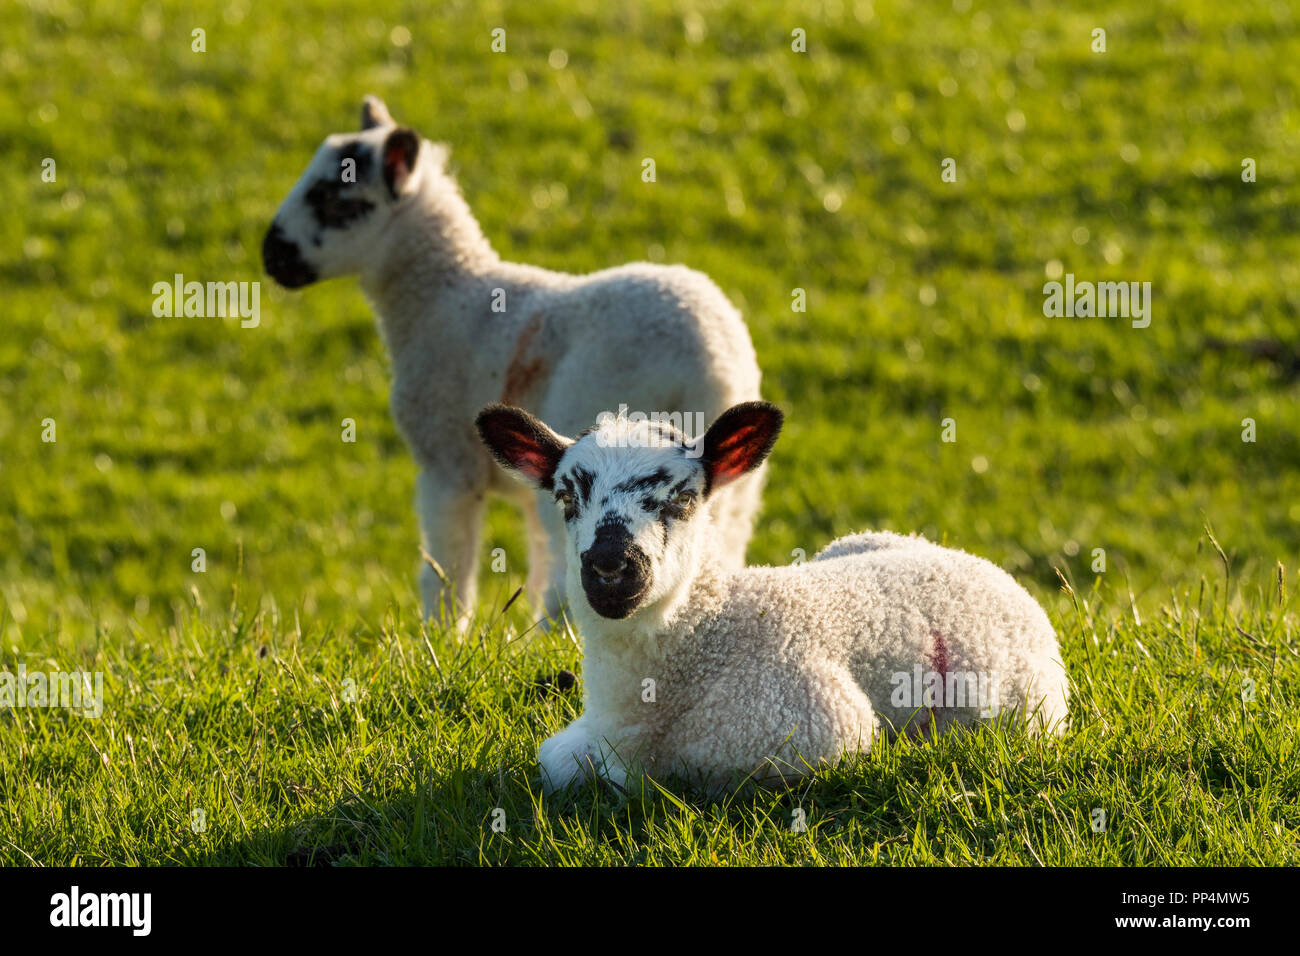 Front view of 1 cute lamb, ears pricked, laying down on lush green grass, in sunlit farm field, its friend standing nearby - Yorkshire, England, UK. - Stock Image